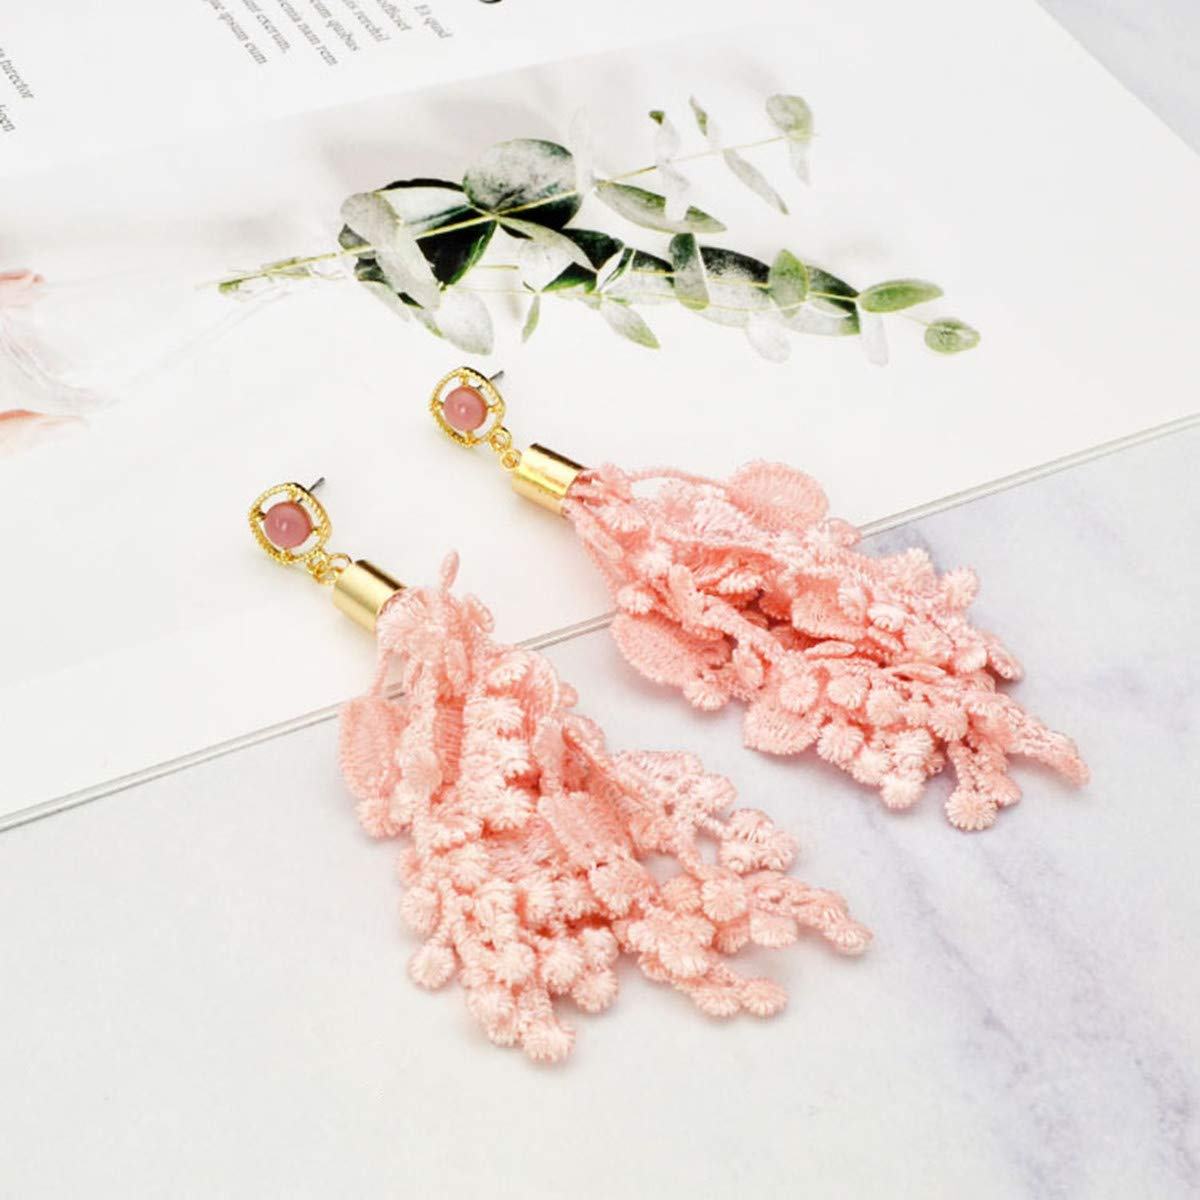 VIIRY 12pcs Tassels Mix Color Style Fashion Soft Silk Lace Tassels Fit for Jewelry Making DIY Accessories 6 Pairs